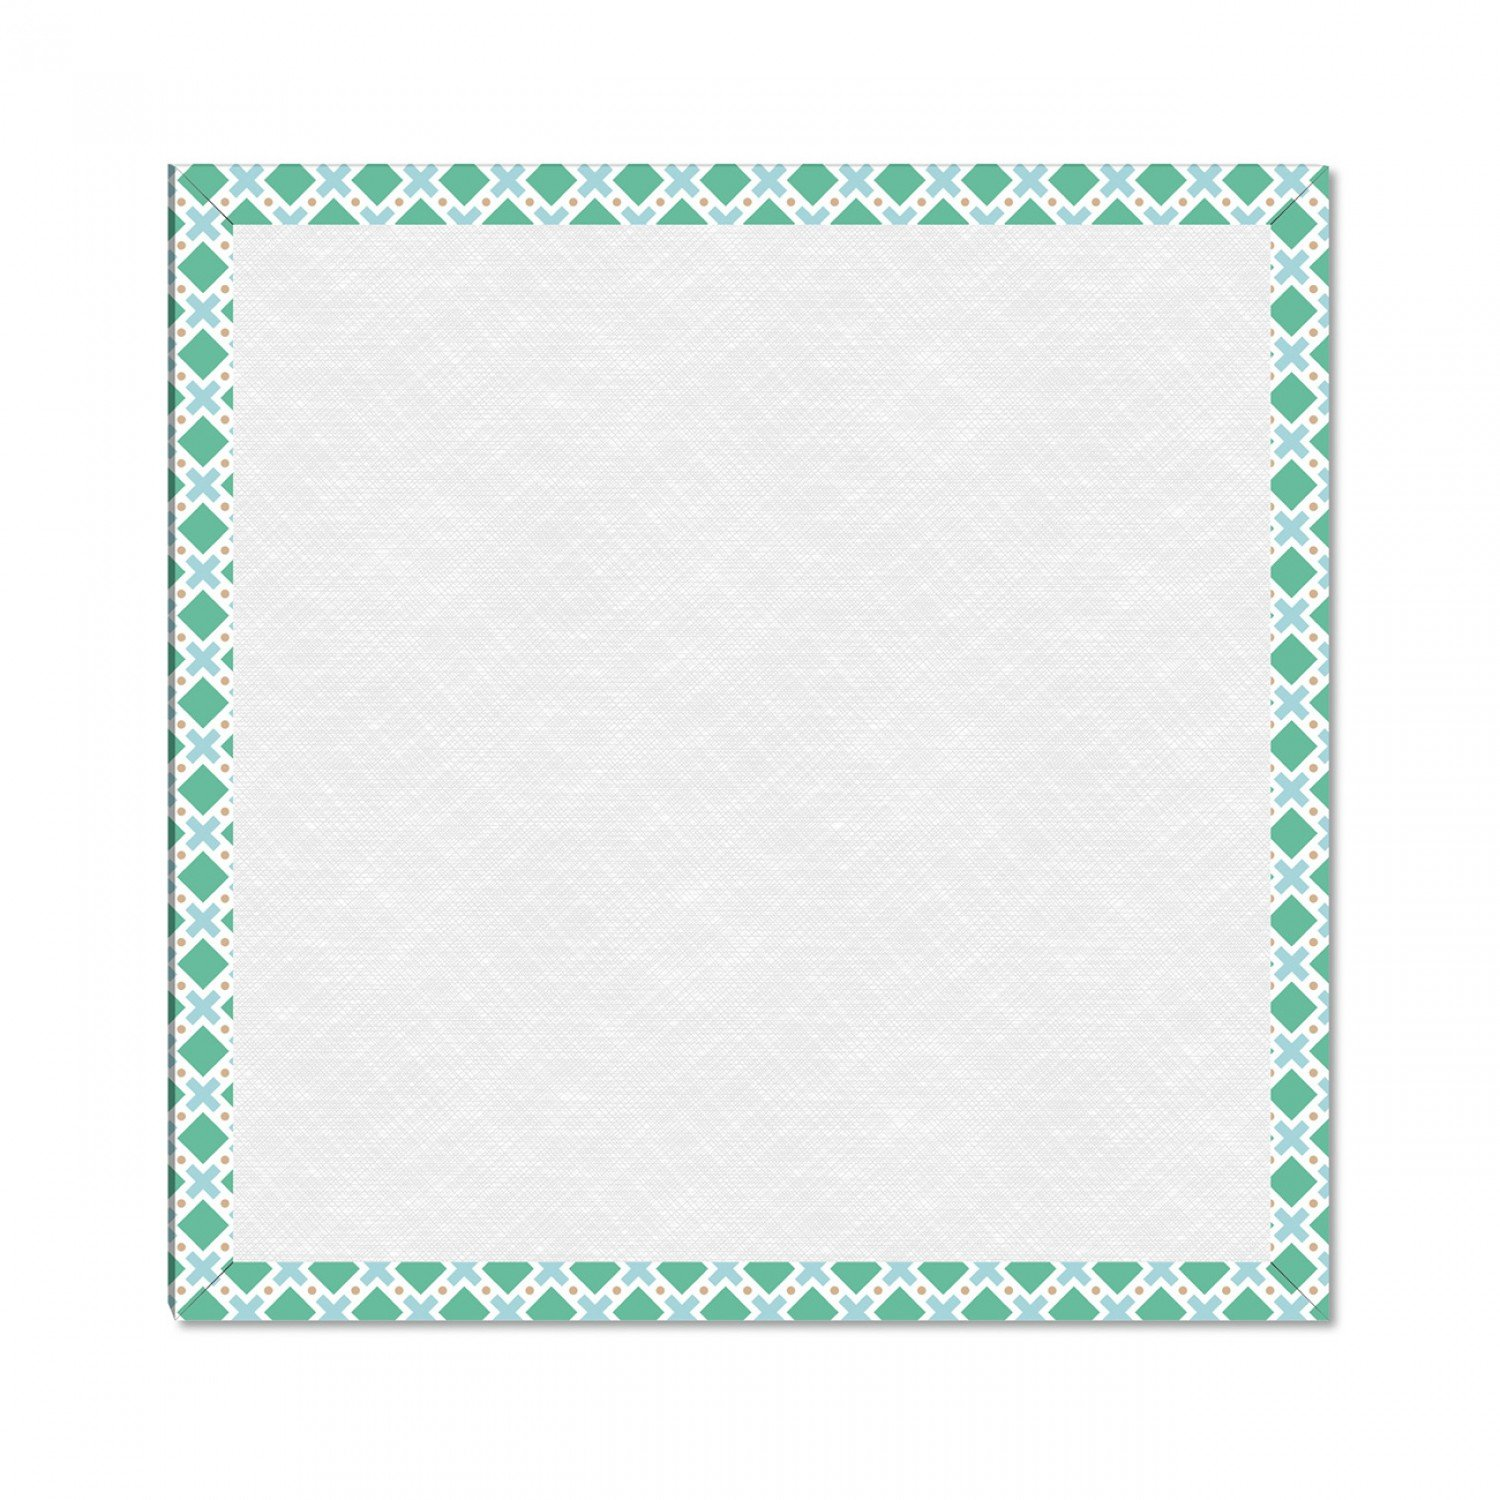 Lori Holt 10in Design Board Using C6405-Turquoise Polka Dot